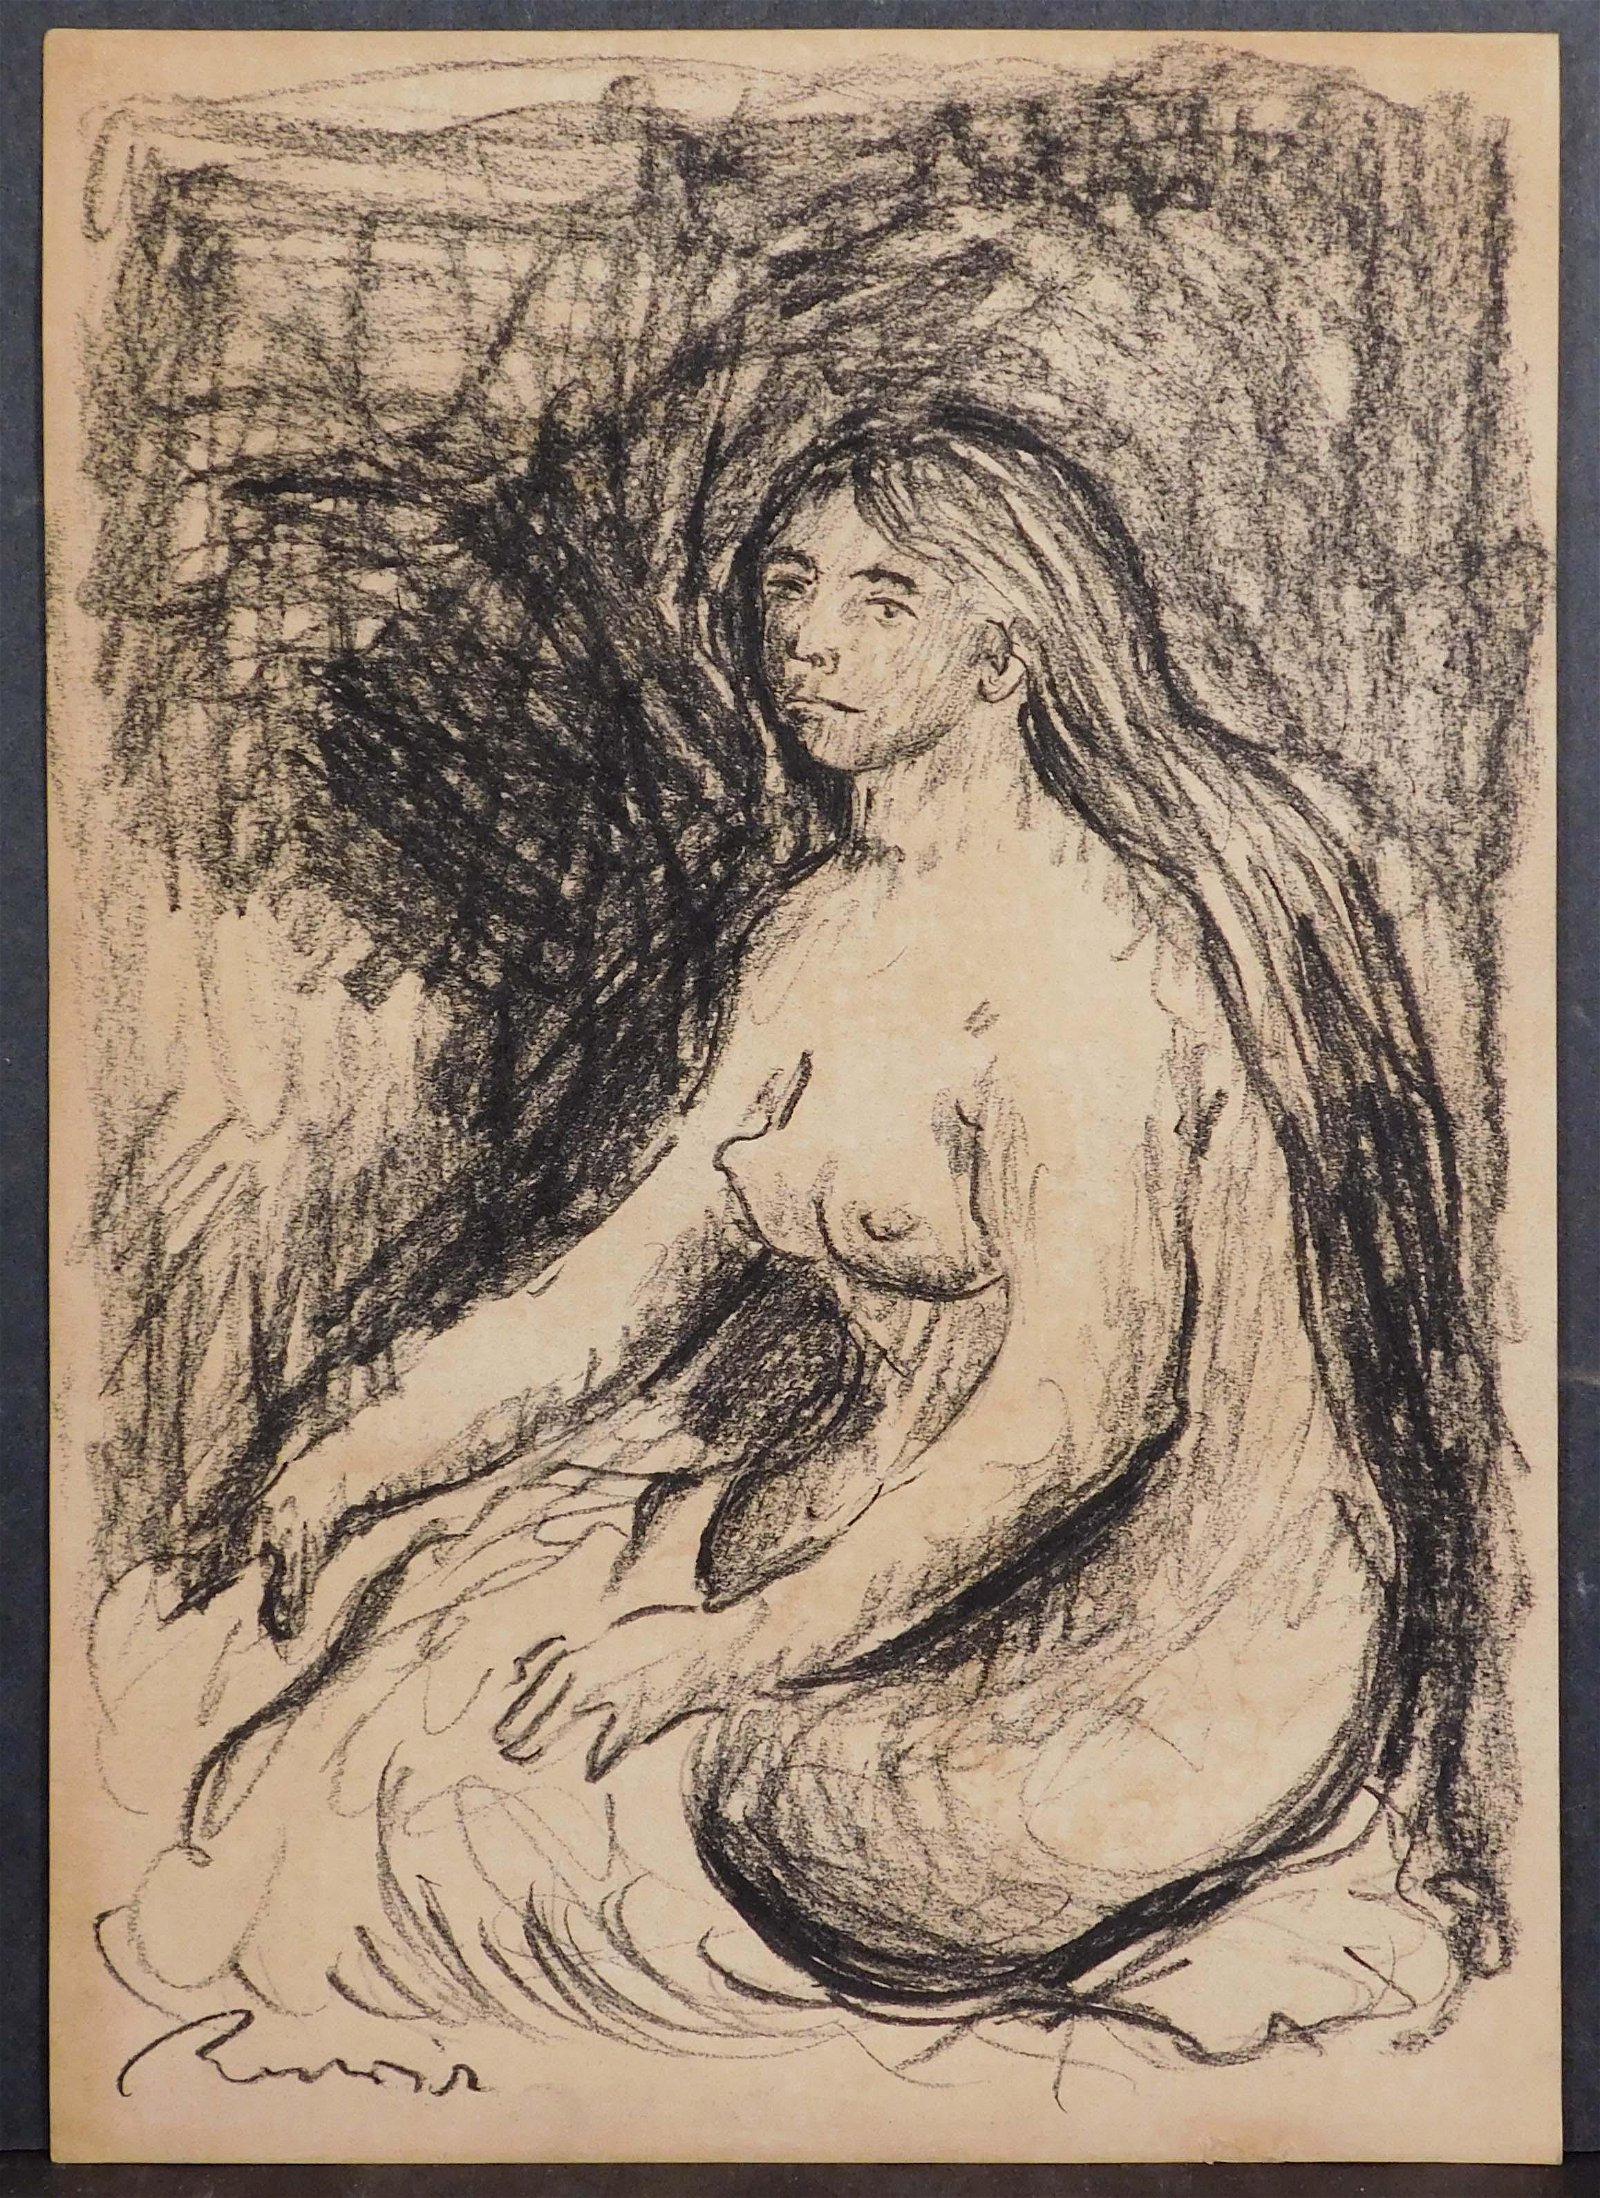 Pierre-Auguste Renoir (French, 1841-1919) Manner of: